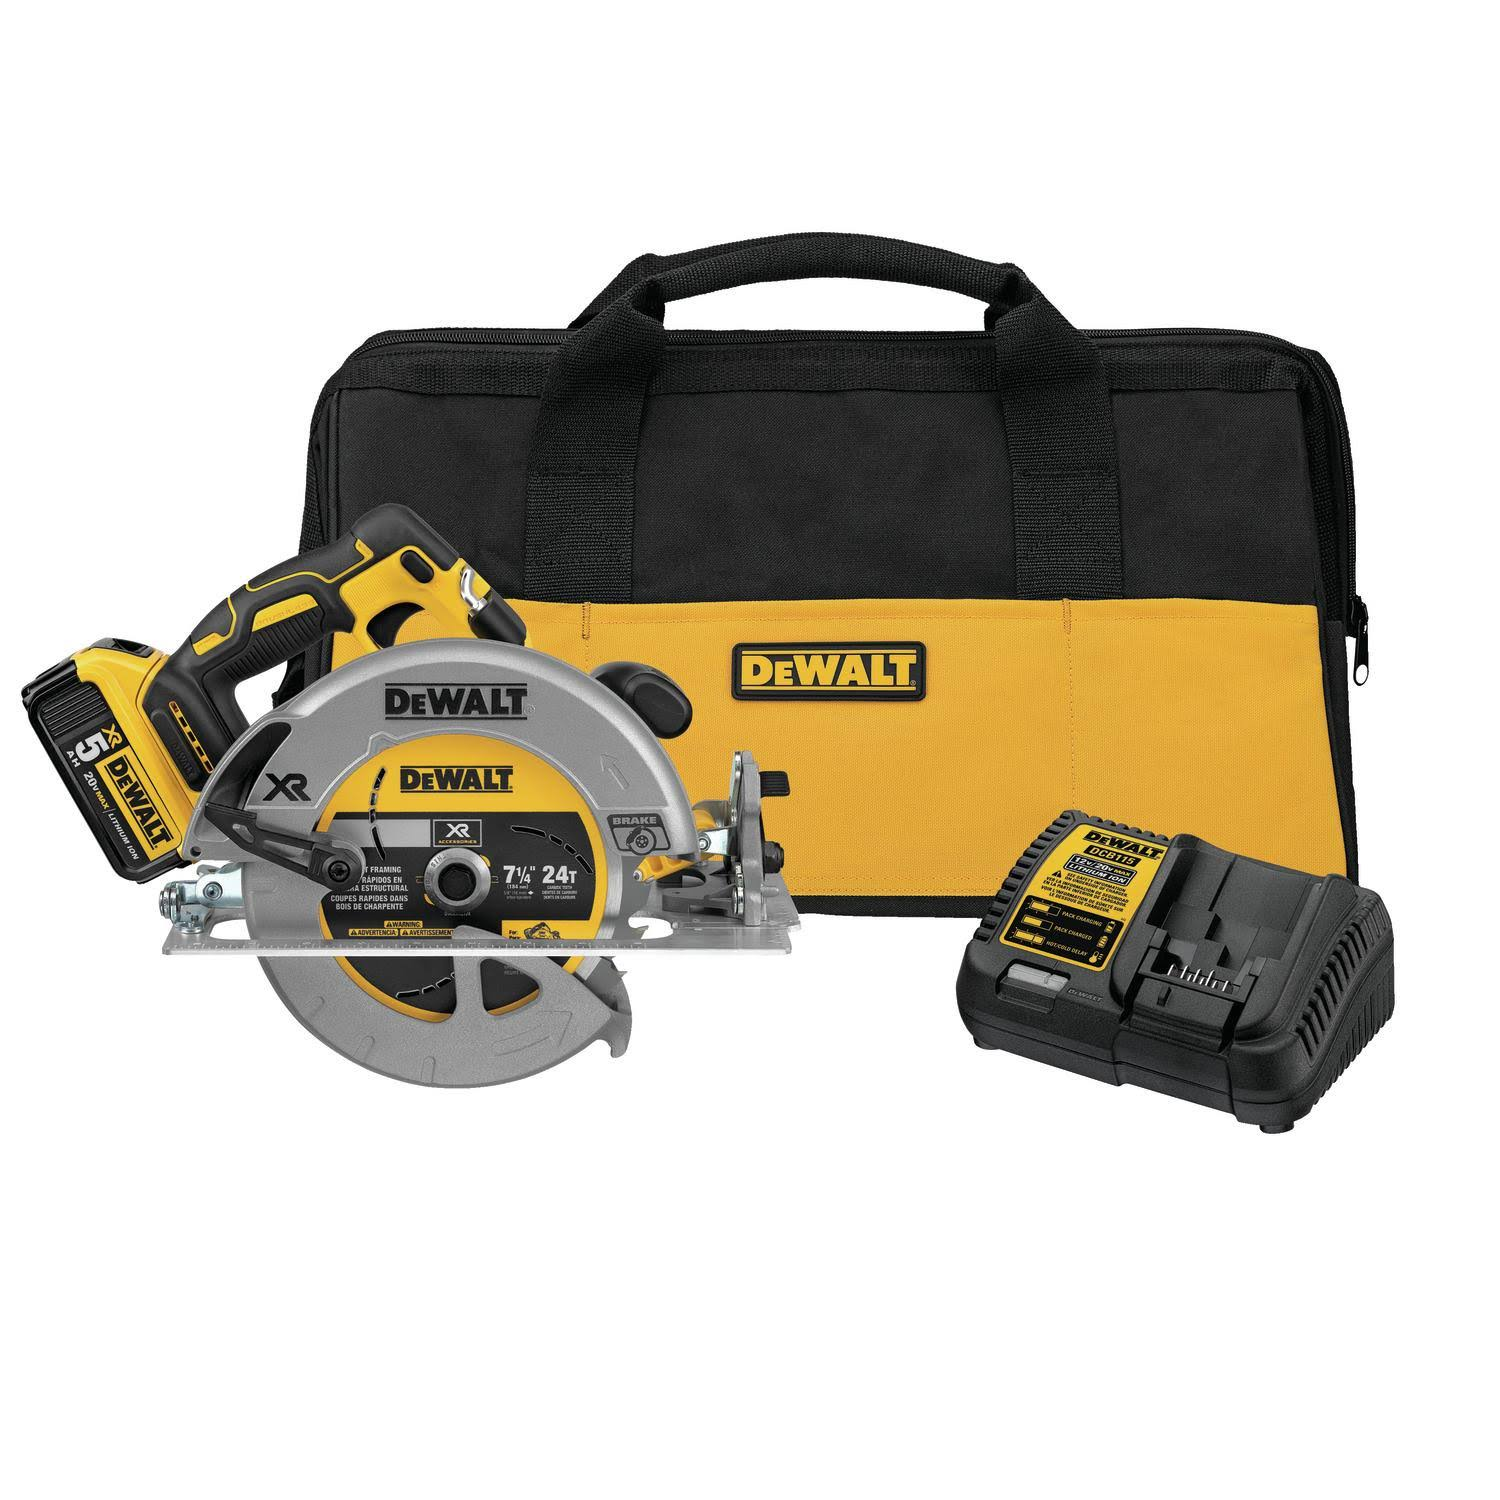 "Dewalt DCS570P1 Max Li-ion Brushless Circular Saw Kit - 7-1/4"", 20V"